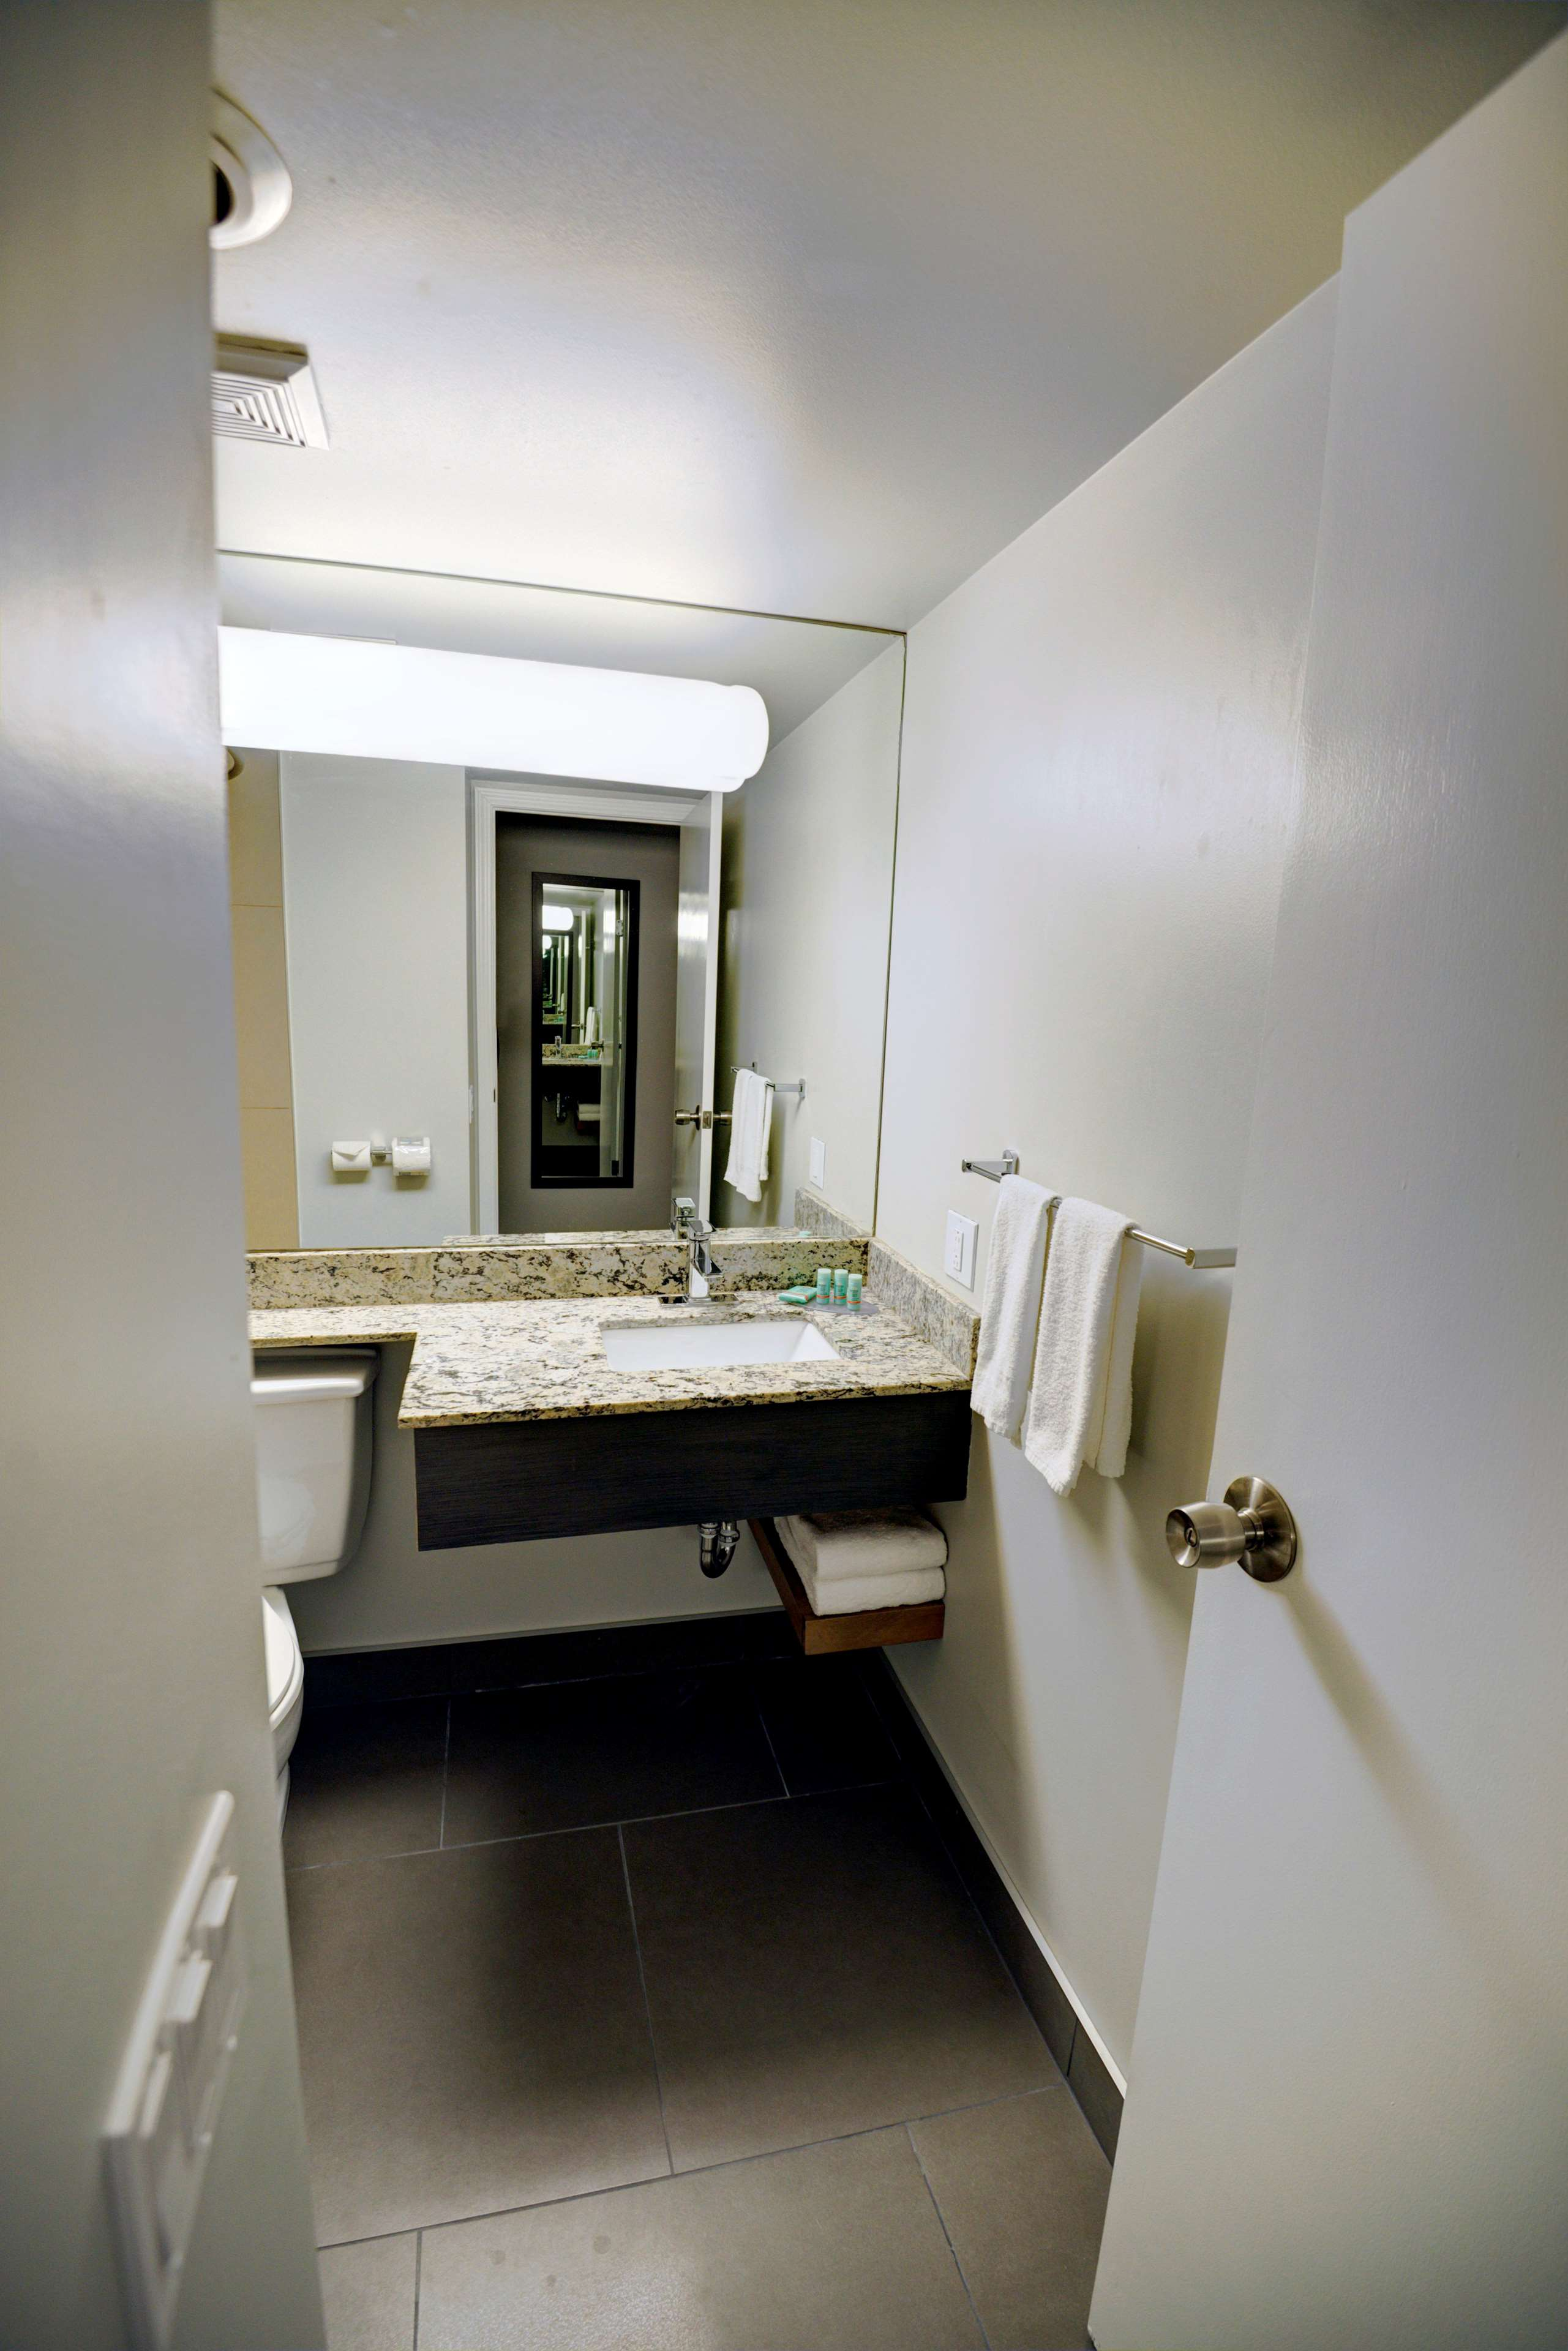 Best Western Airdrie in Airdrie: Guest Bathroom